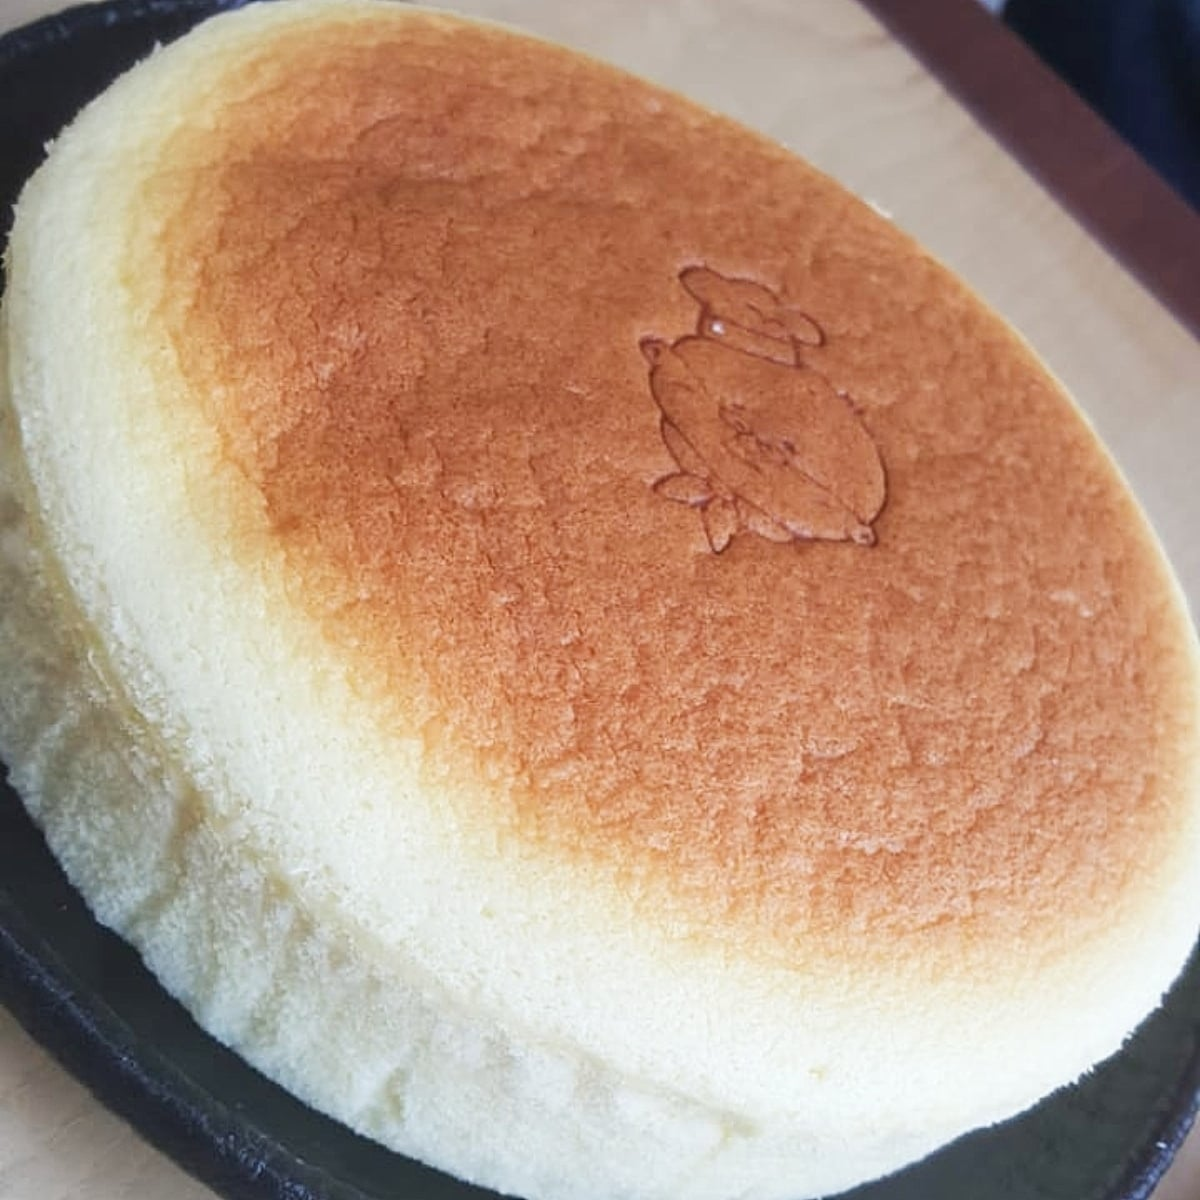 Uncle Tetsu's signature cheesecake is famous world over